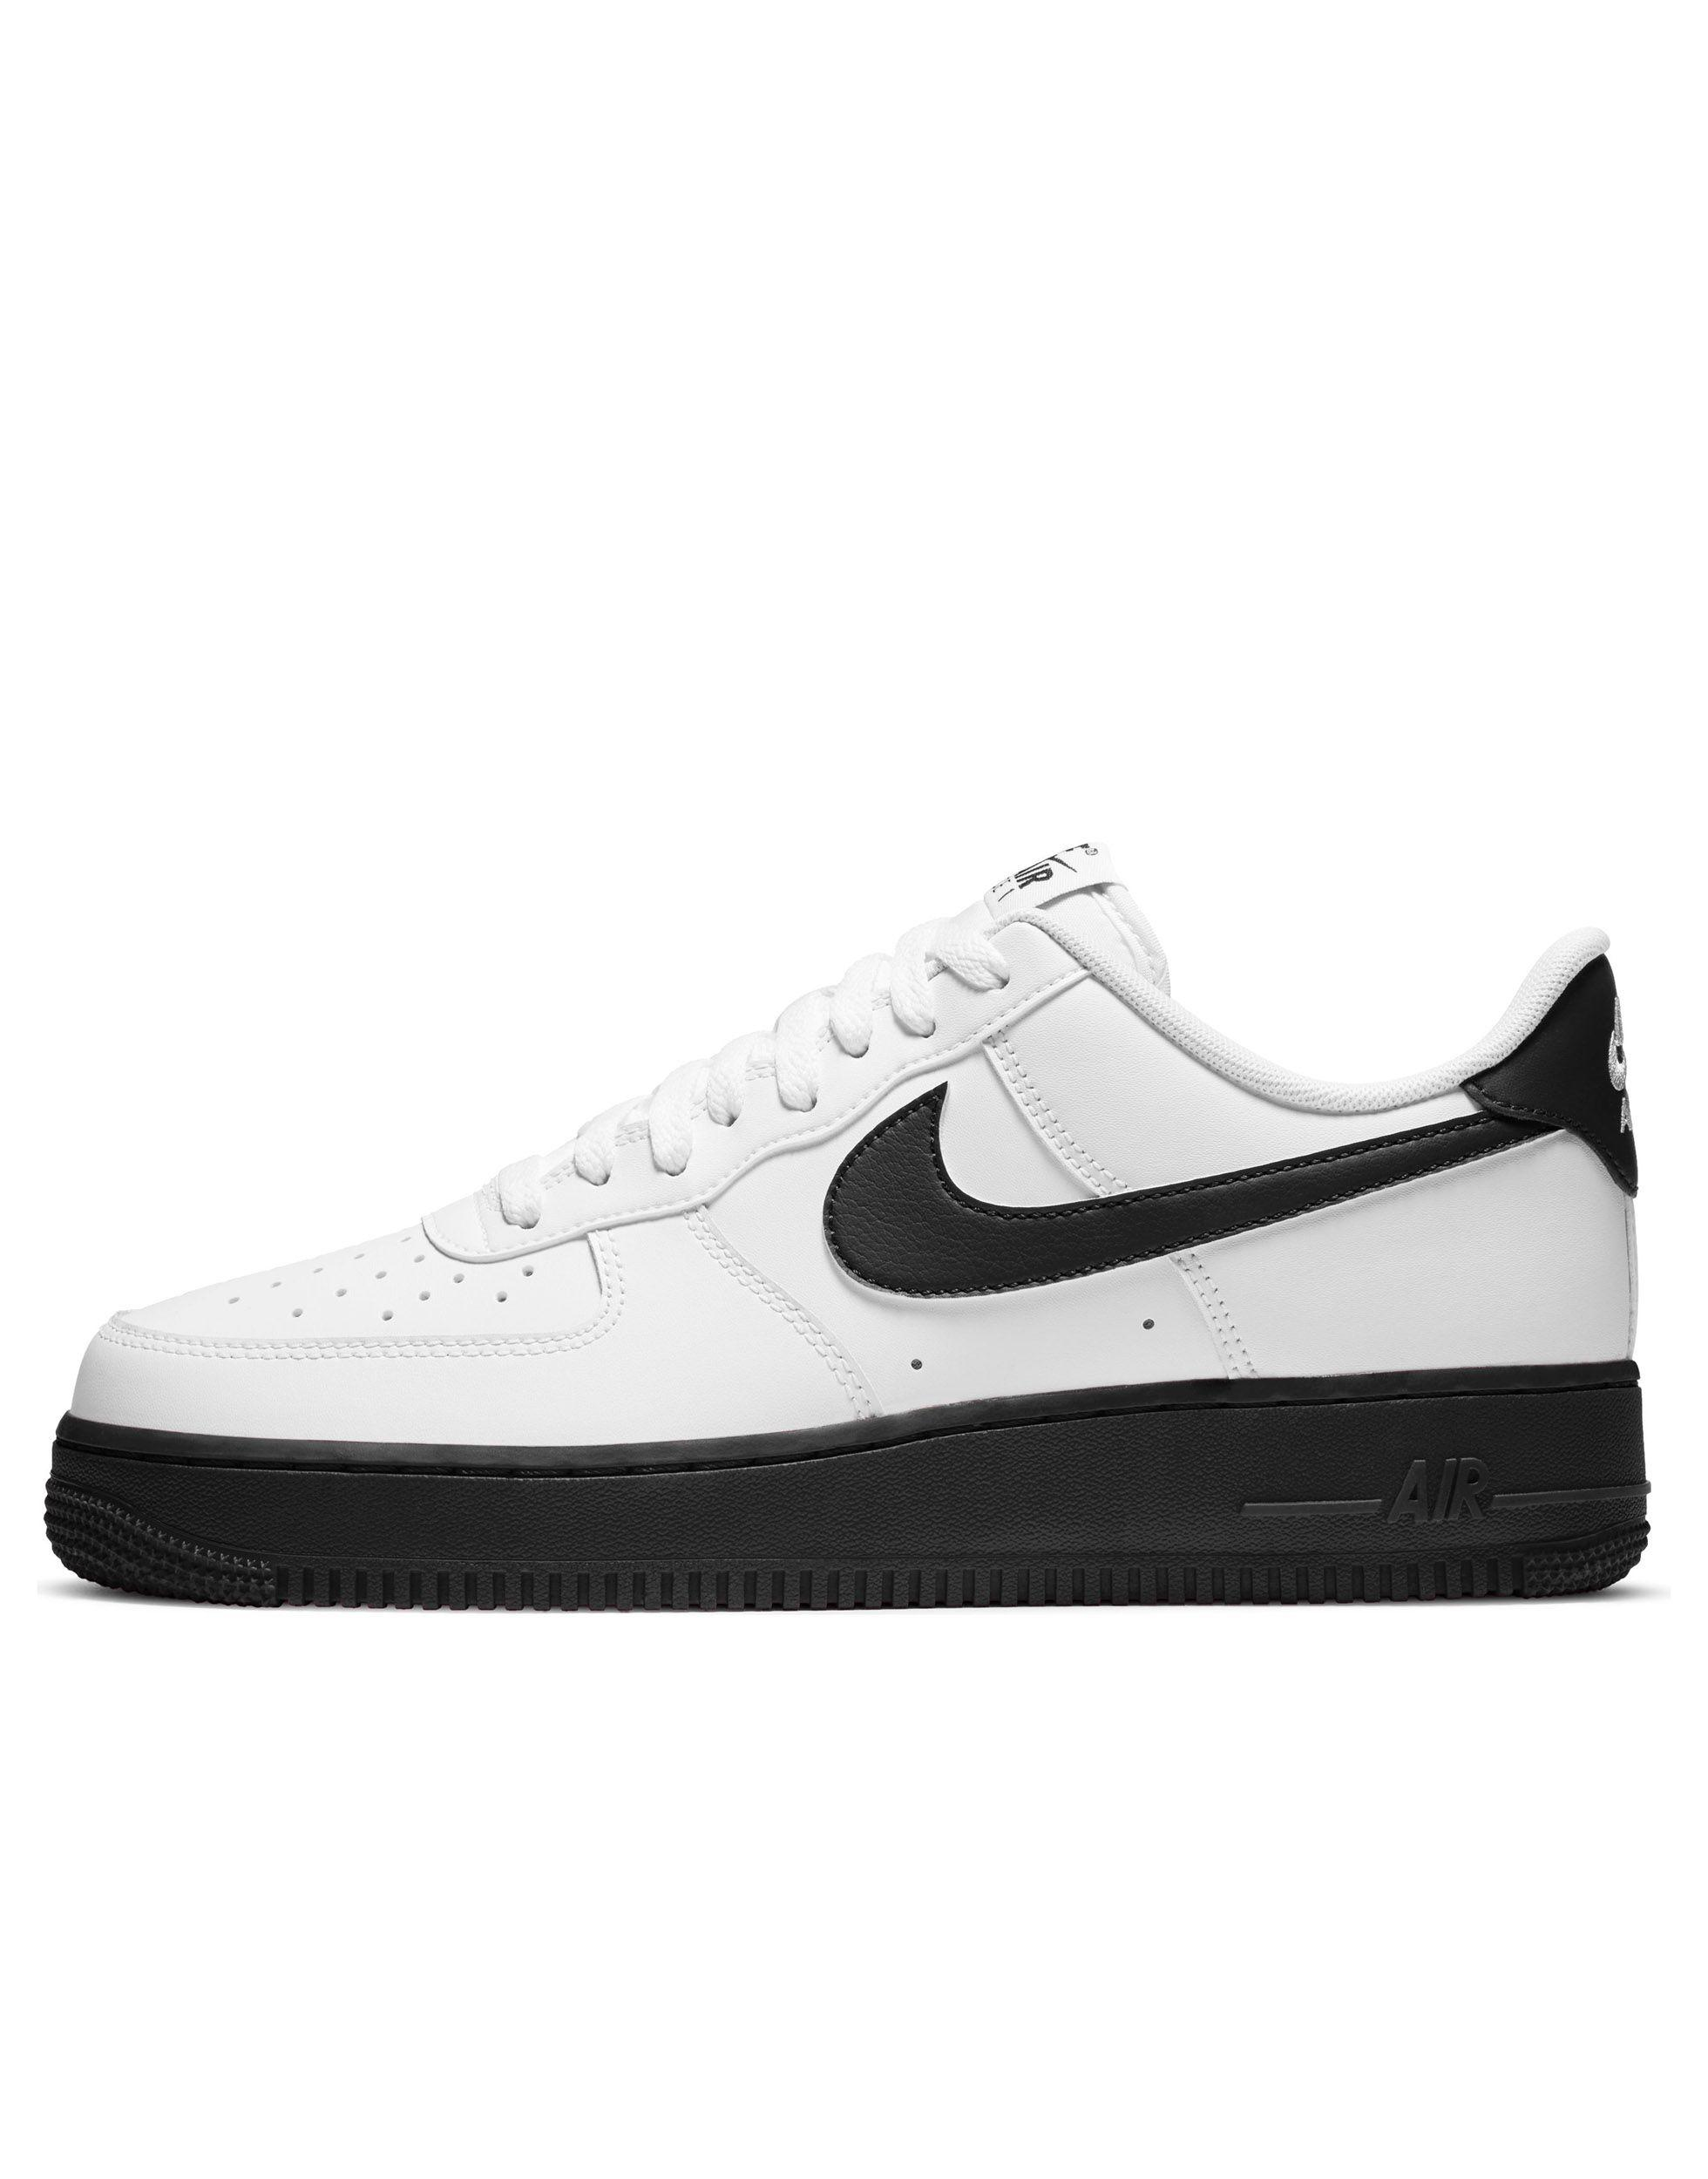 Nike Rubber Air Force 1 '07 Brick Trainers in White/Black (White ...